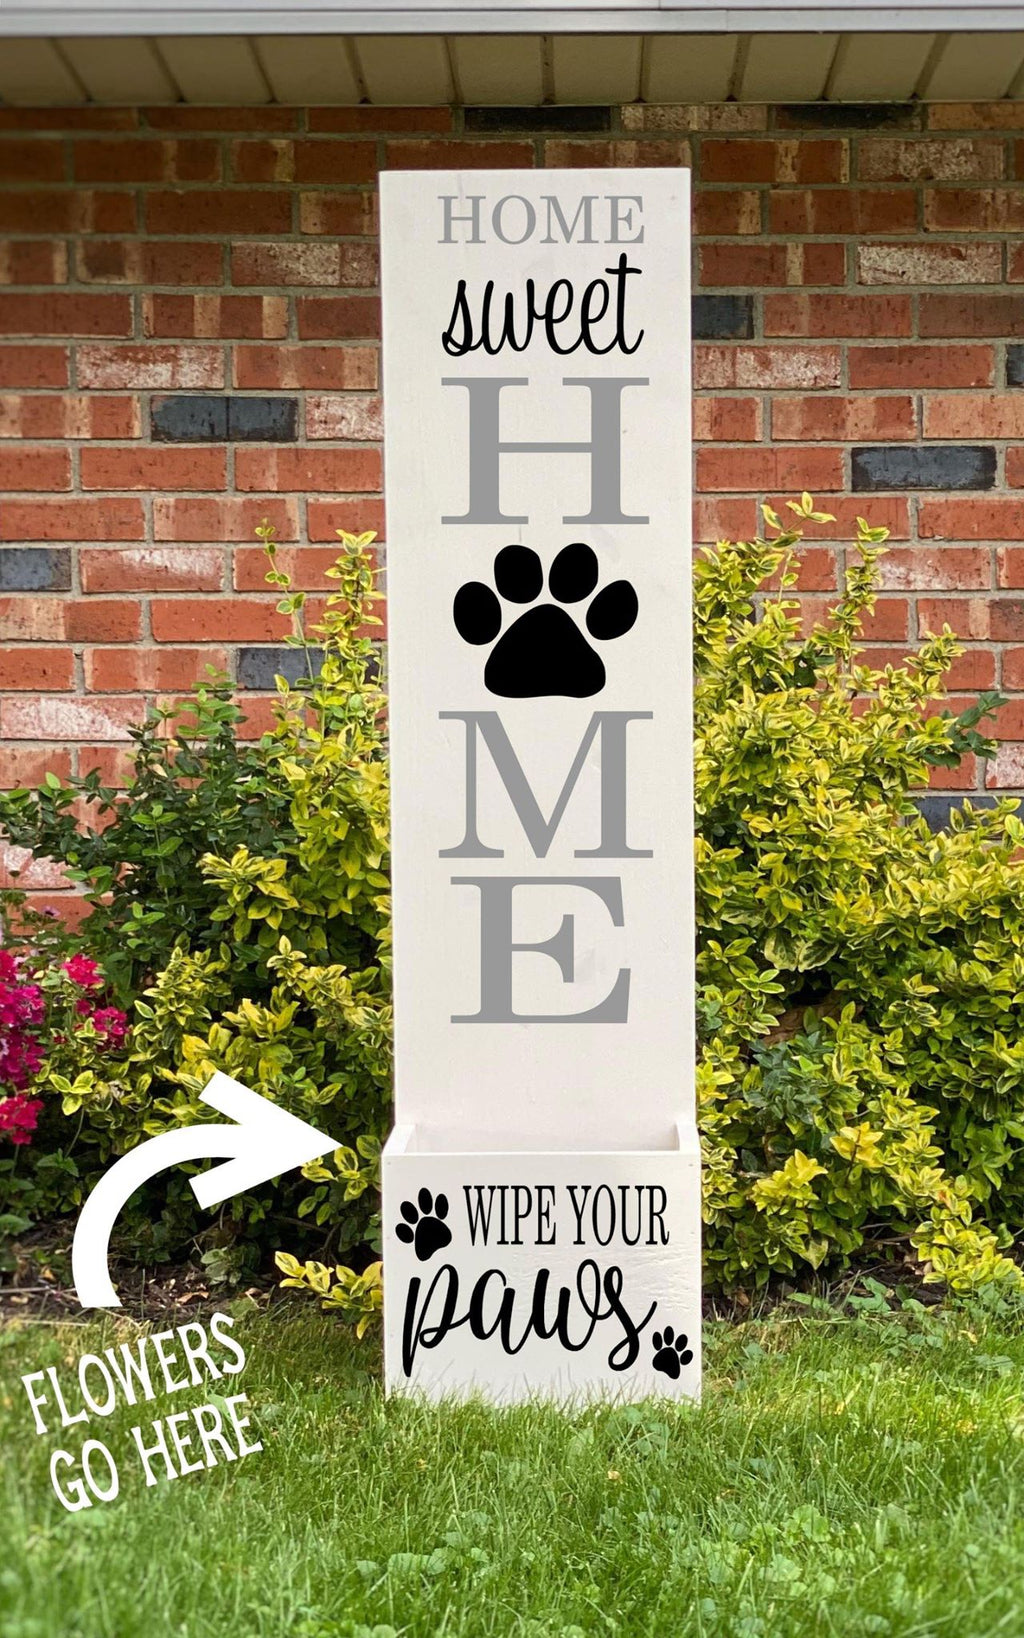 Porch Planter - Home sweet Home - Wipe your paws